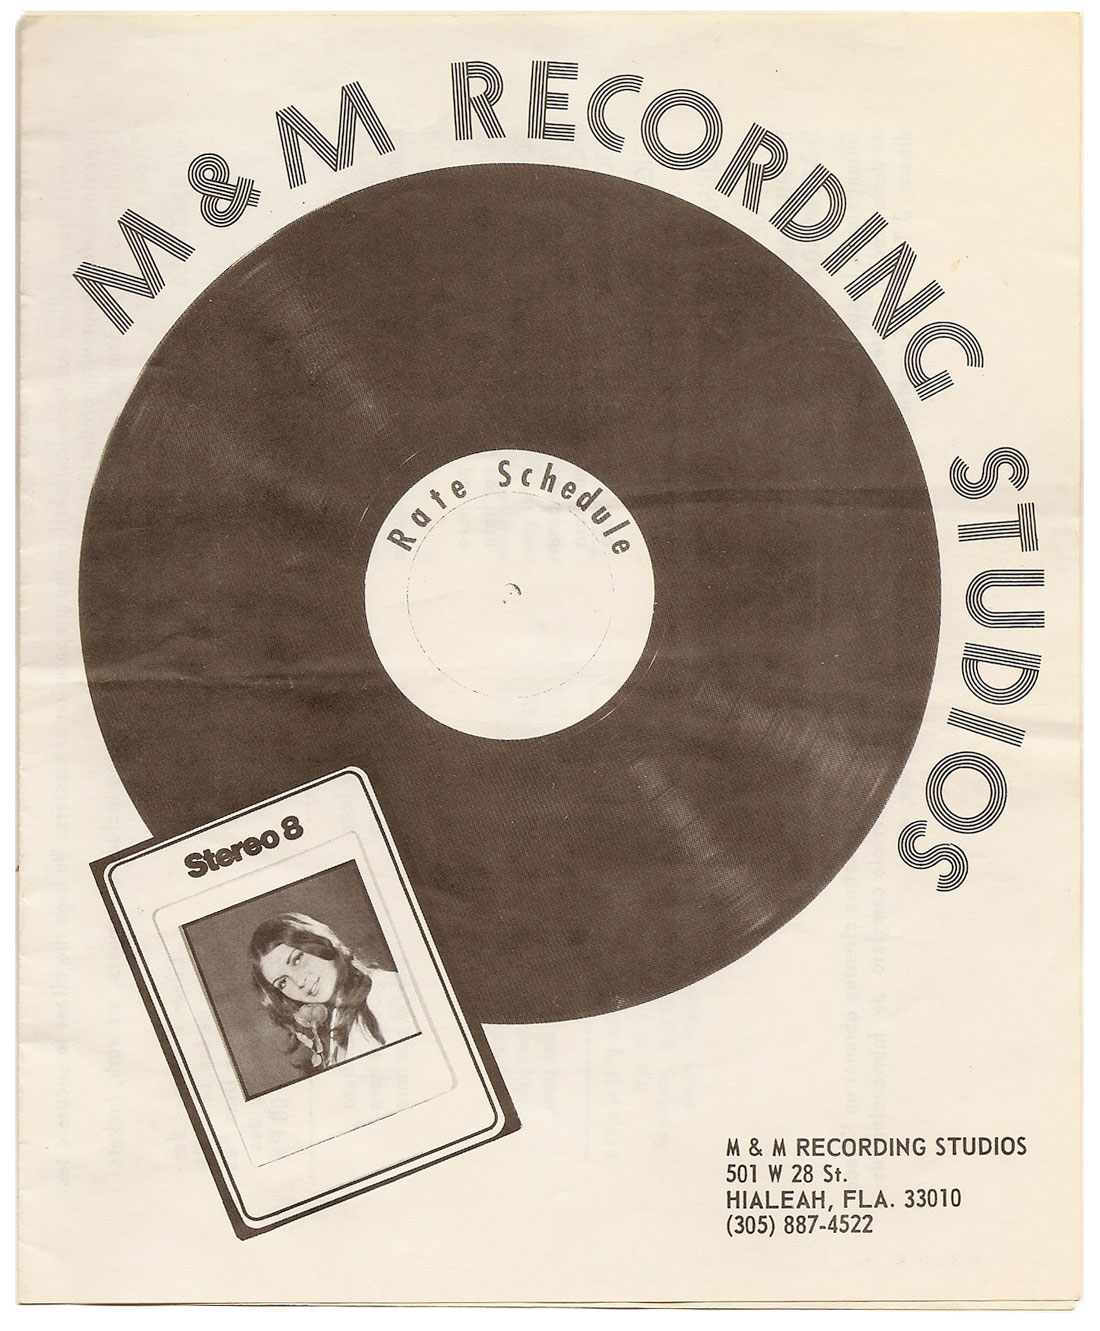 M&M Recording Studios rate-sheet cover